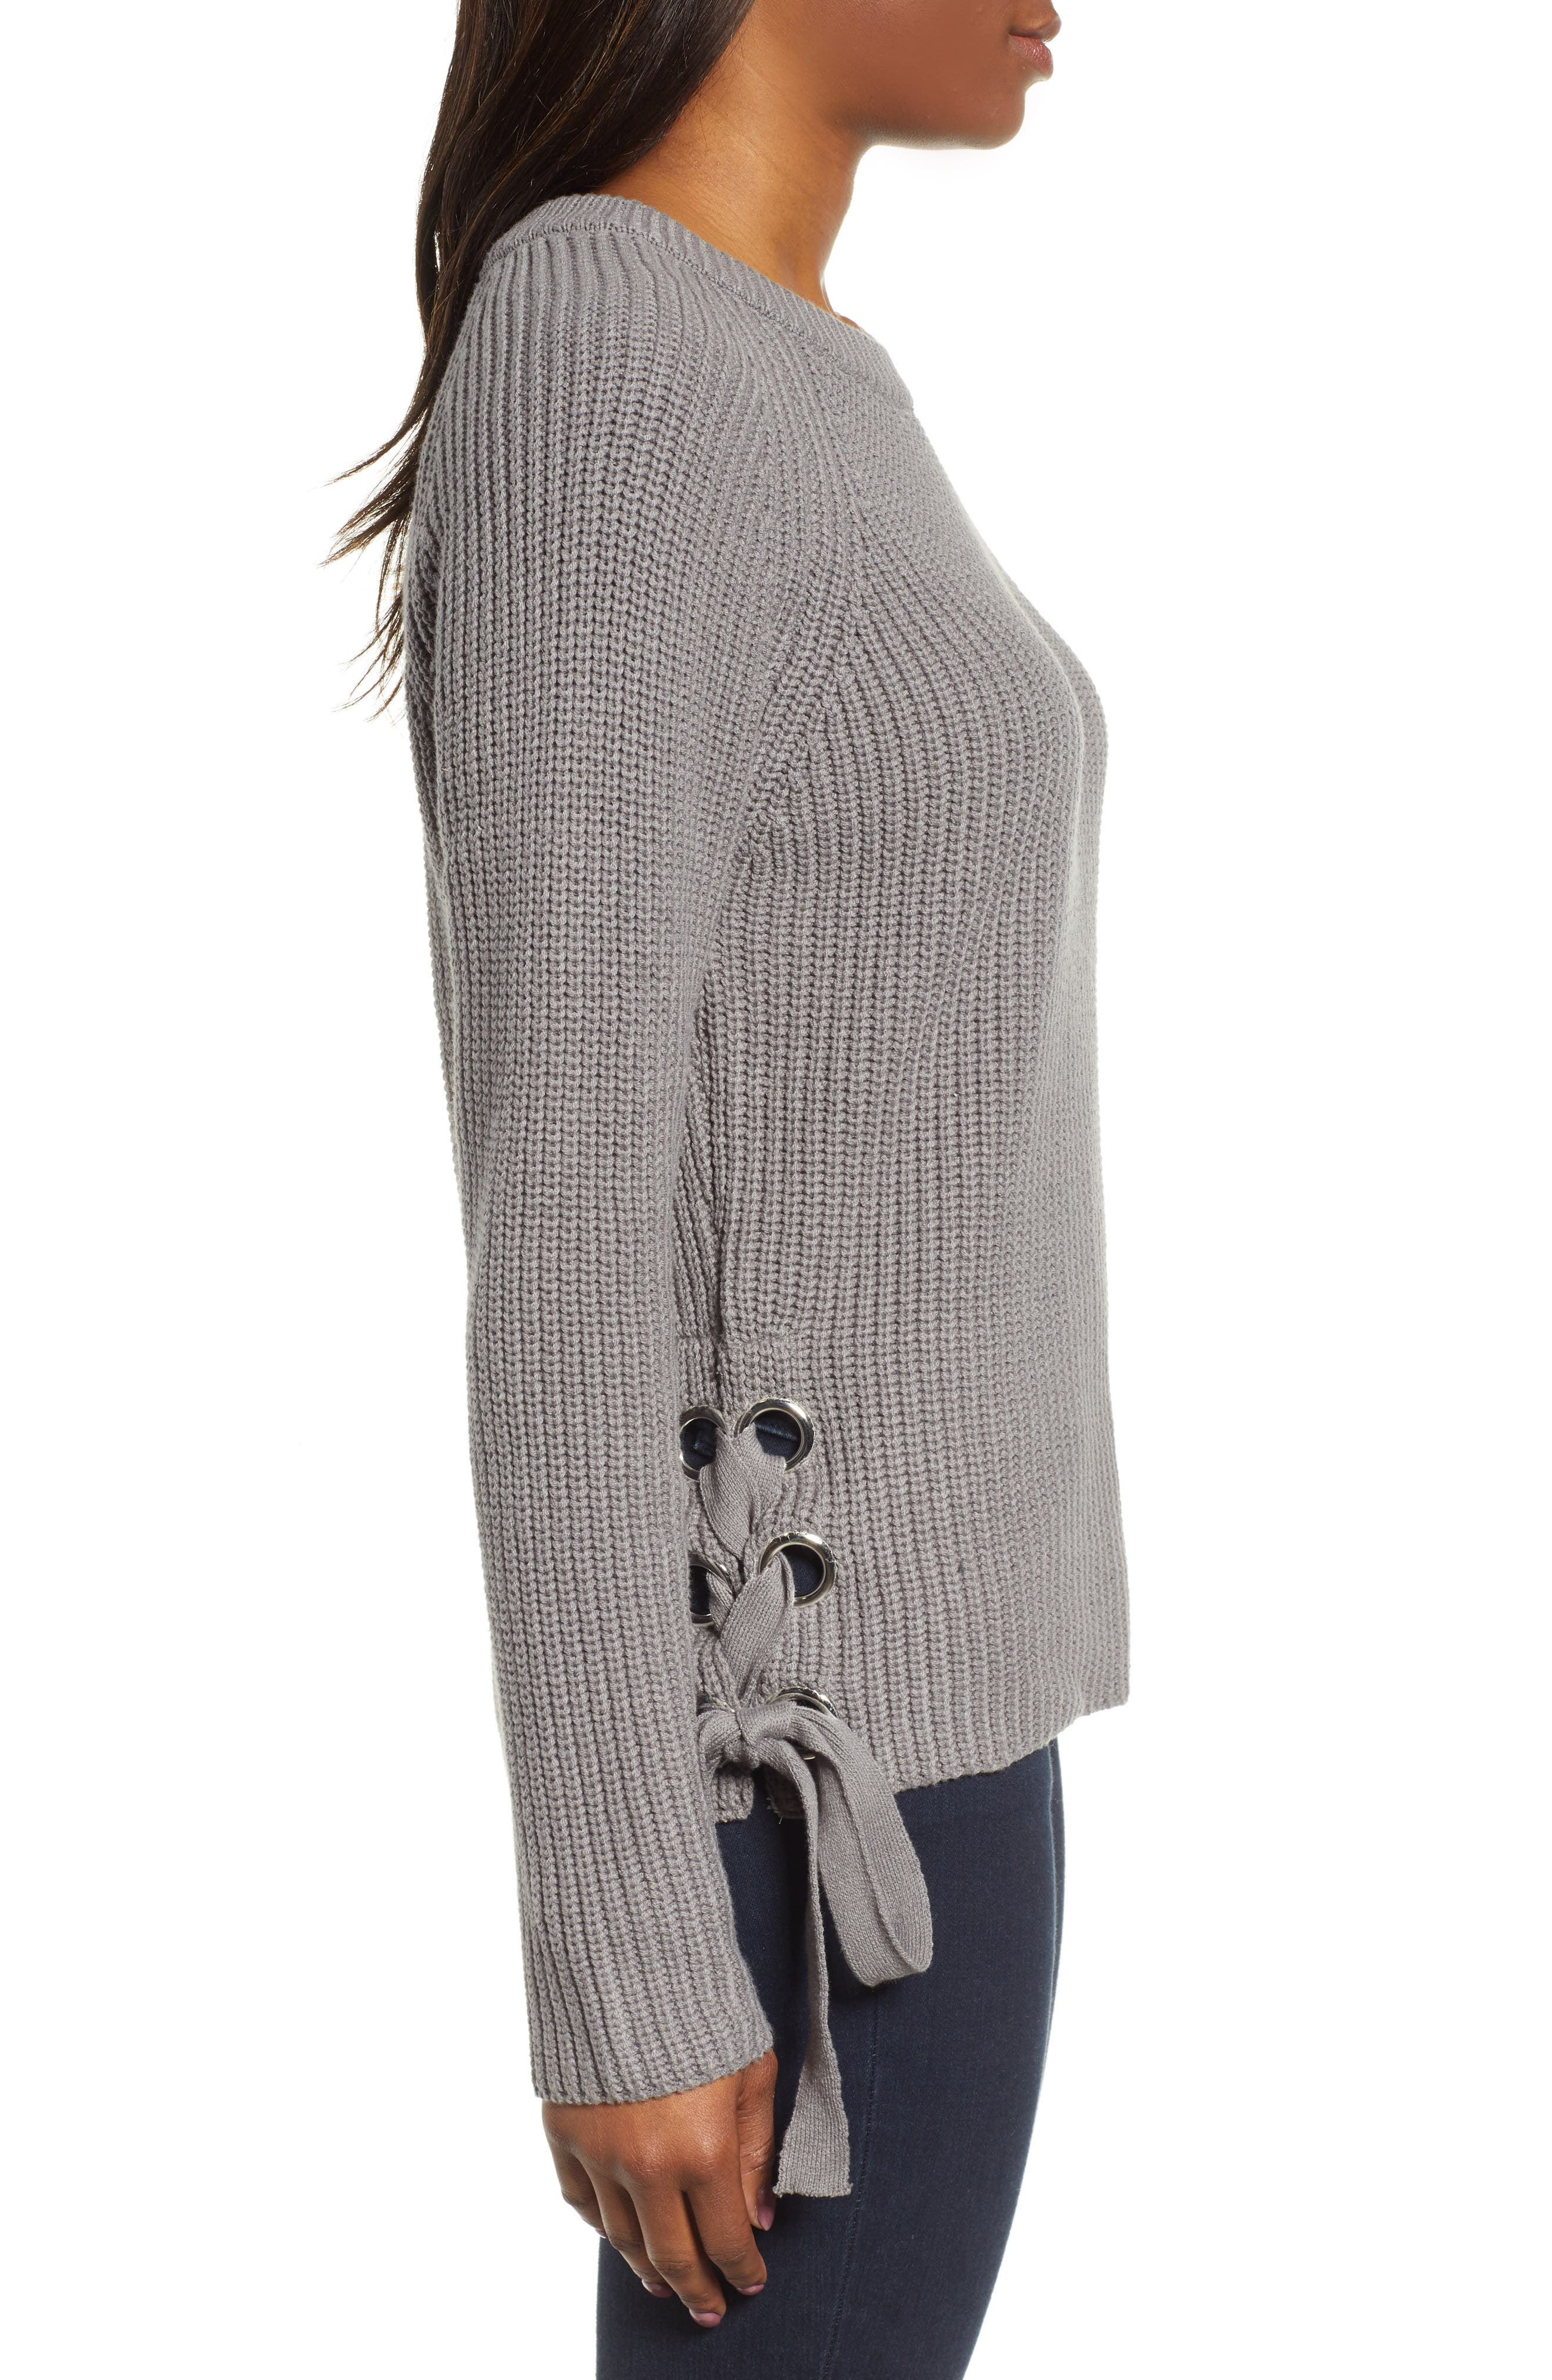 Adire Sweater,                             Alternate thumbnail 3, color,                             022